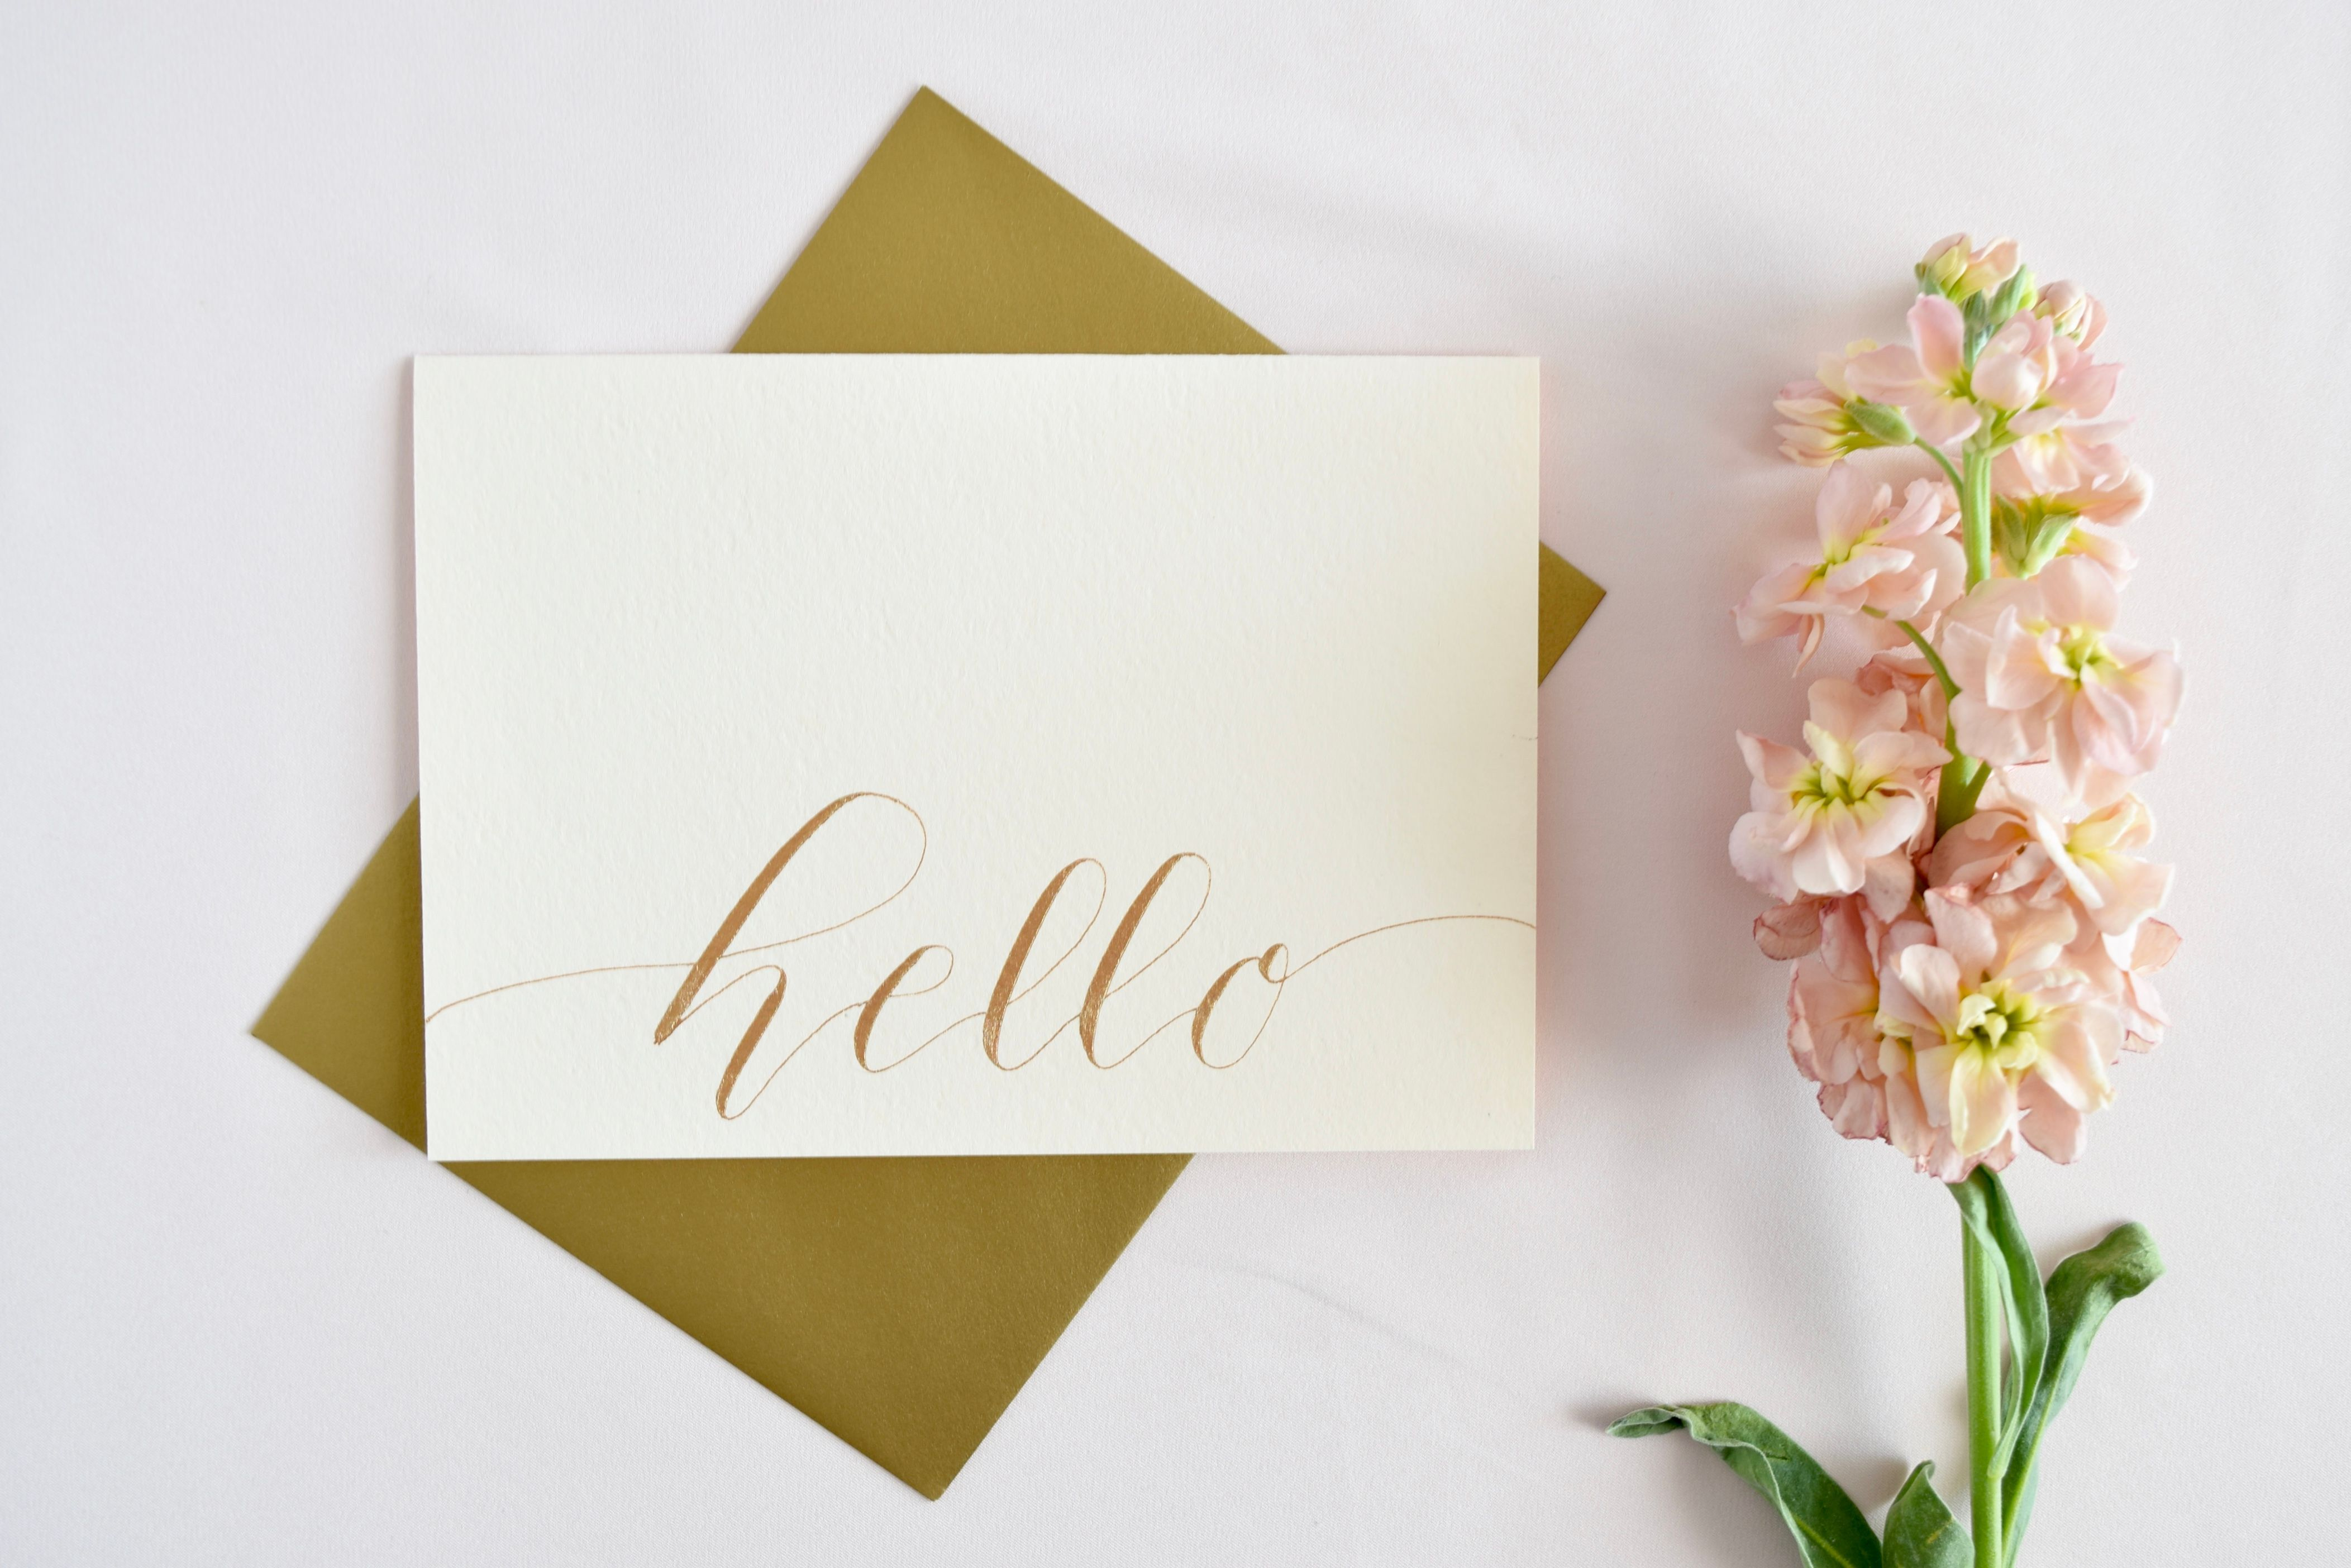 Sending A Card To Your Family Has Never Been Easier Check Out The